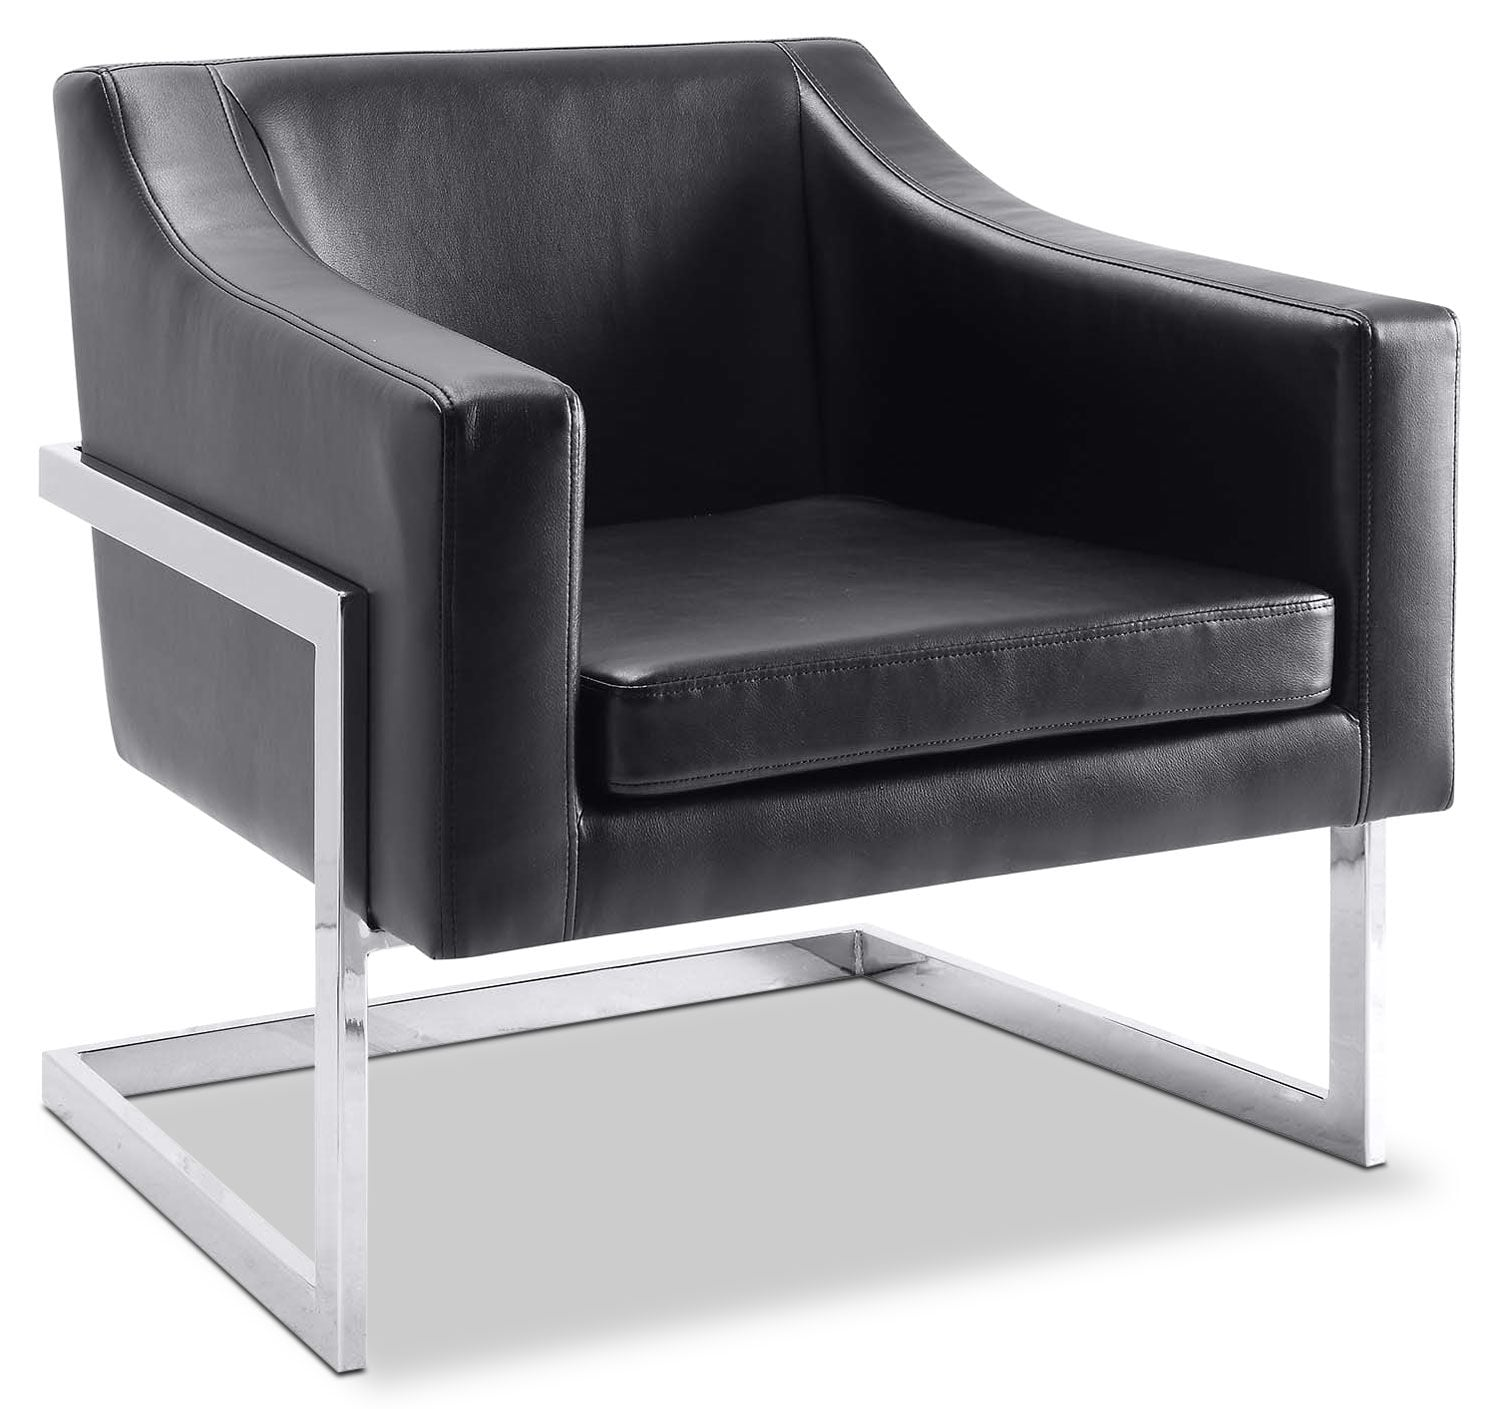 Living Room Furniture - Candid Bonded Leather Accent Chair - Black